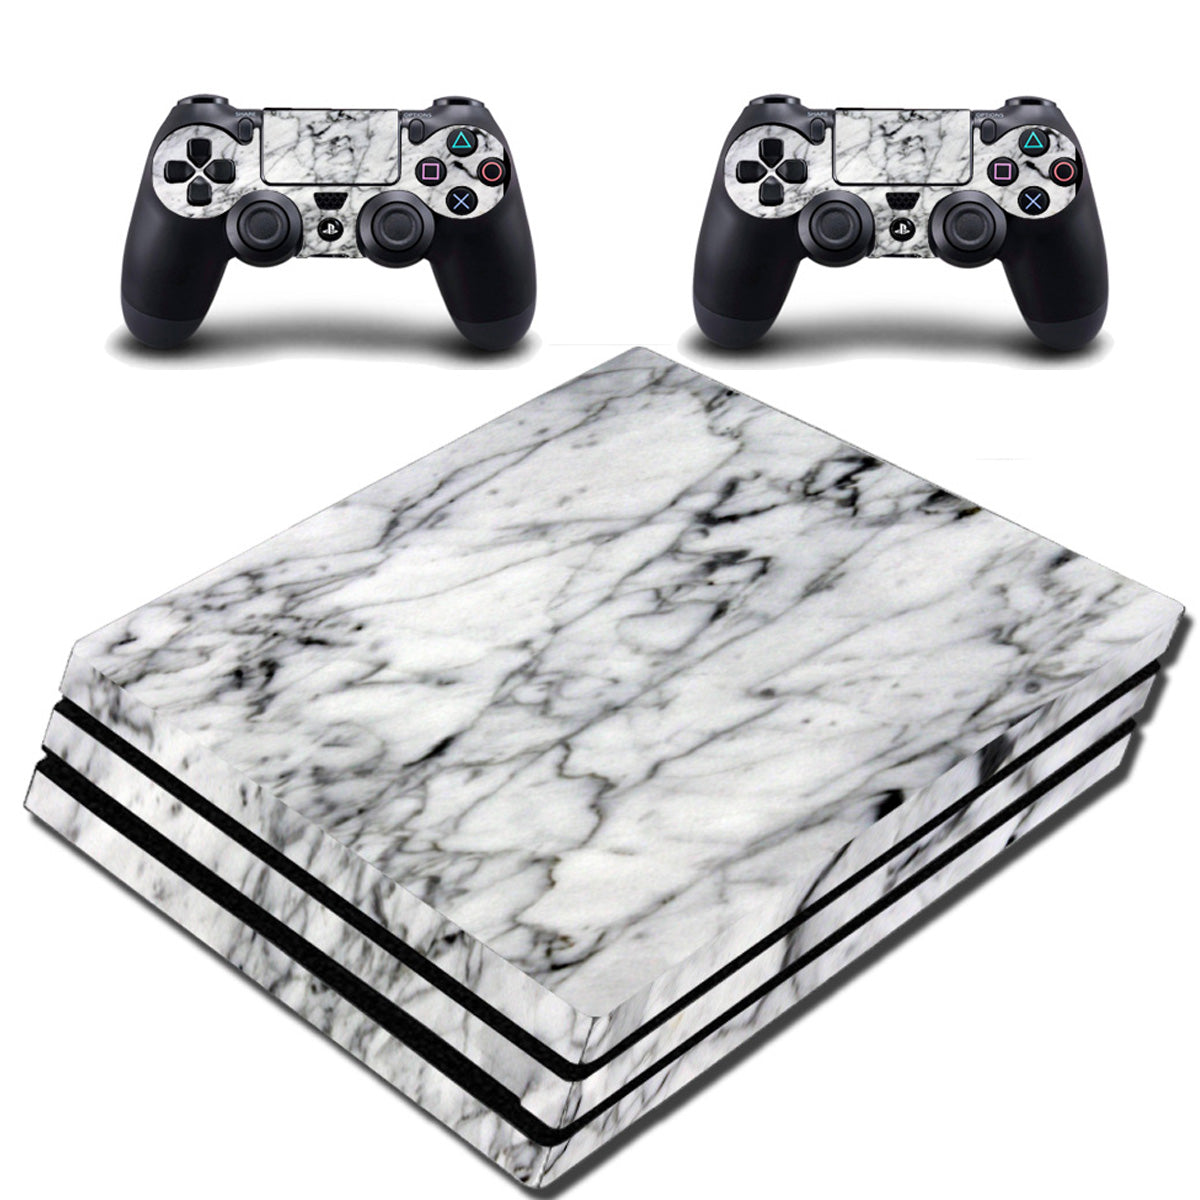 VWAQ PS4 Pro Marble Skin Cover Playstation 4 Pro White Wrap Decal - VWAQ Vinyl Wall Art Quotes and Prints